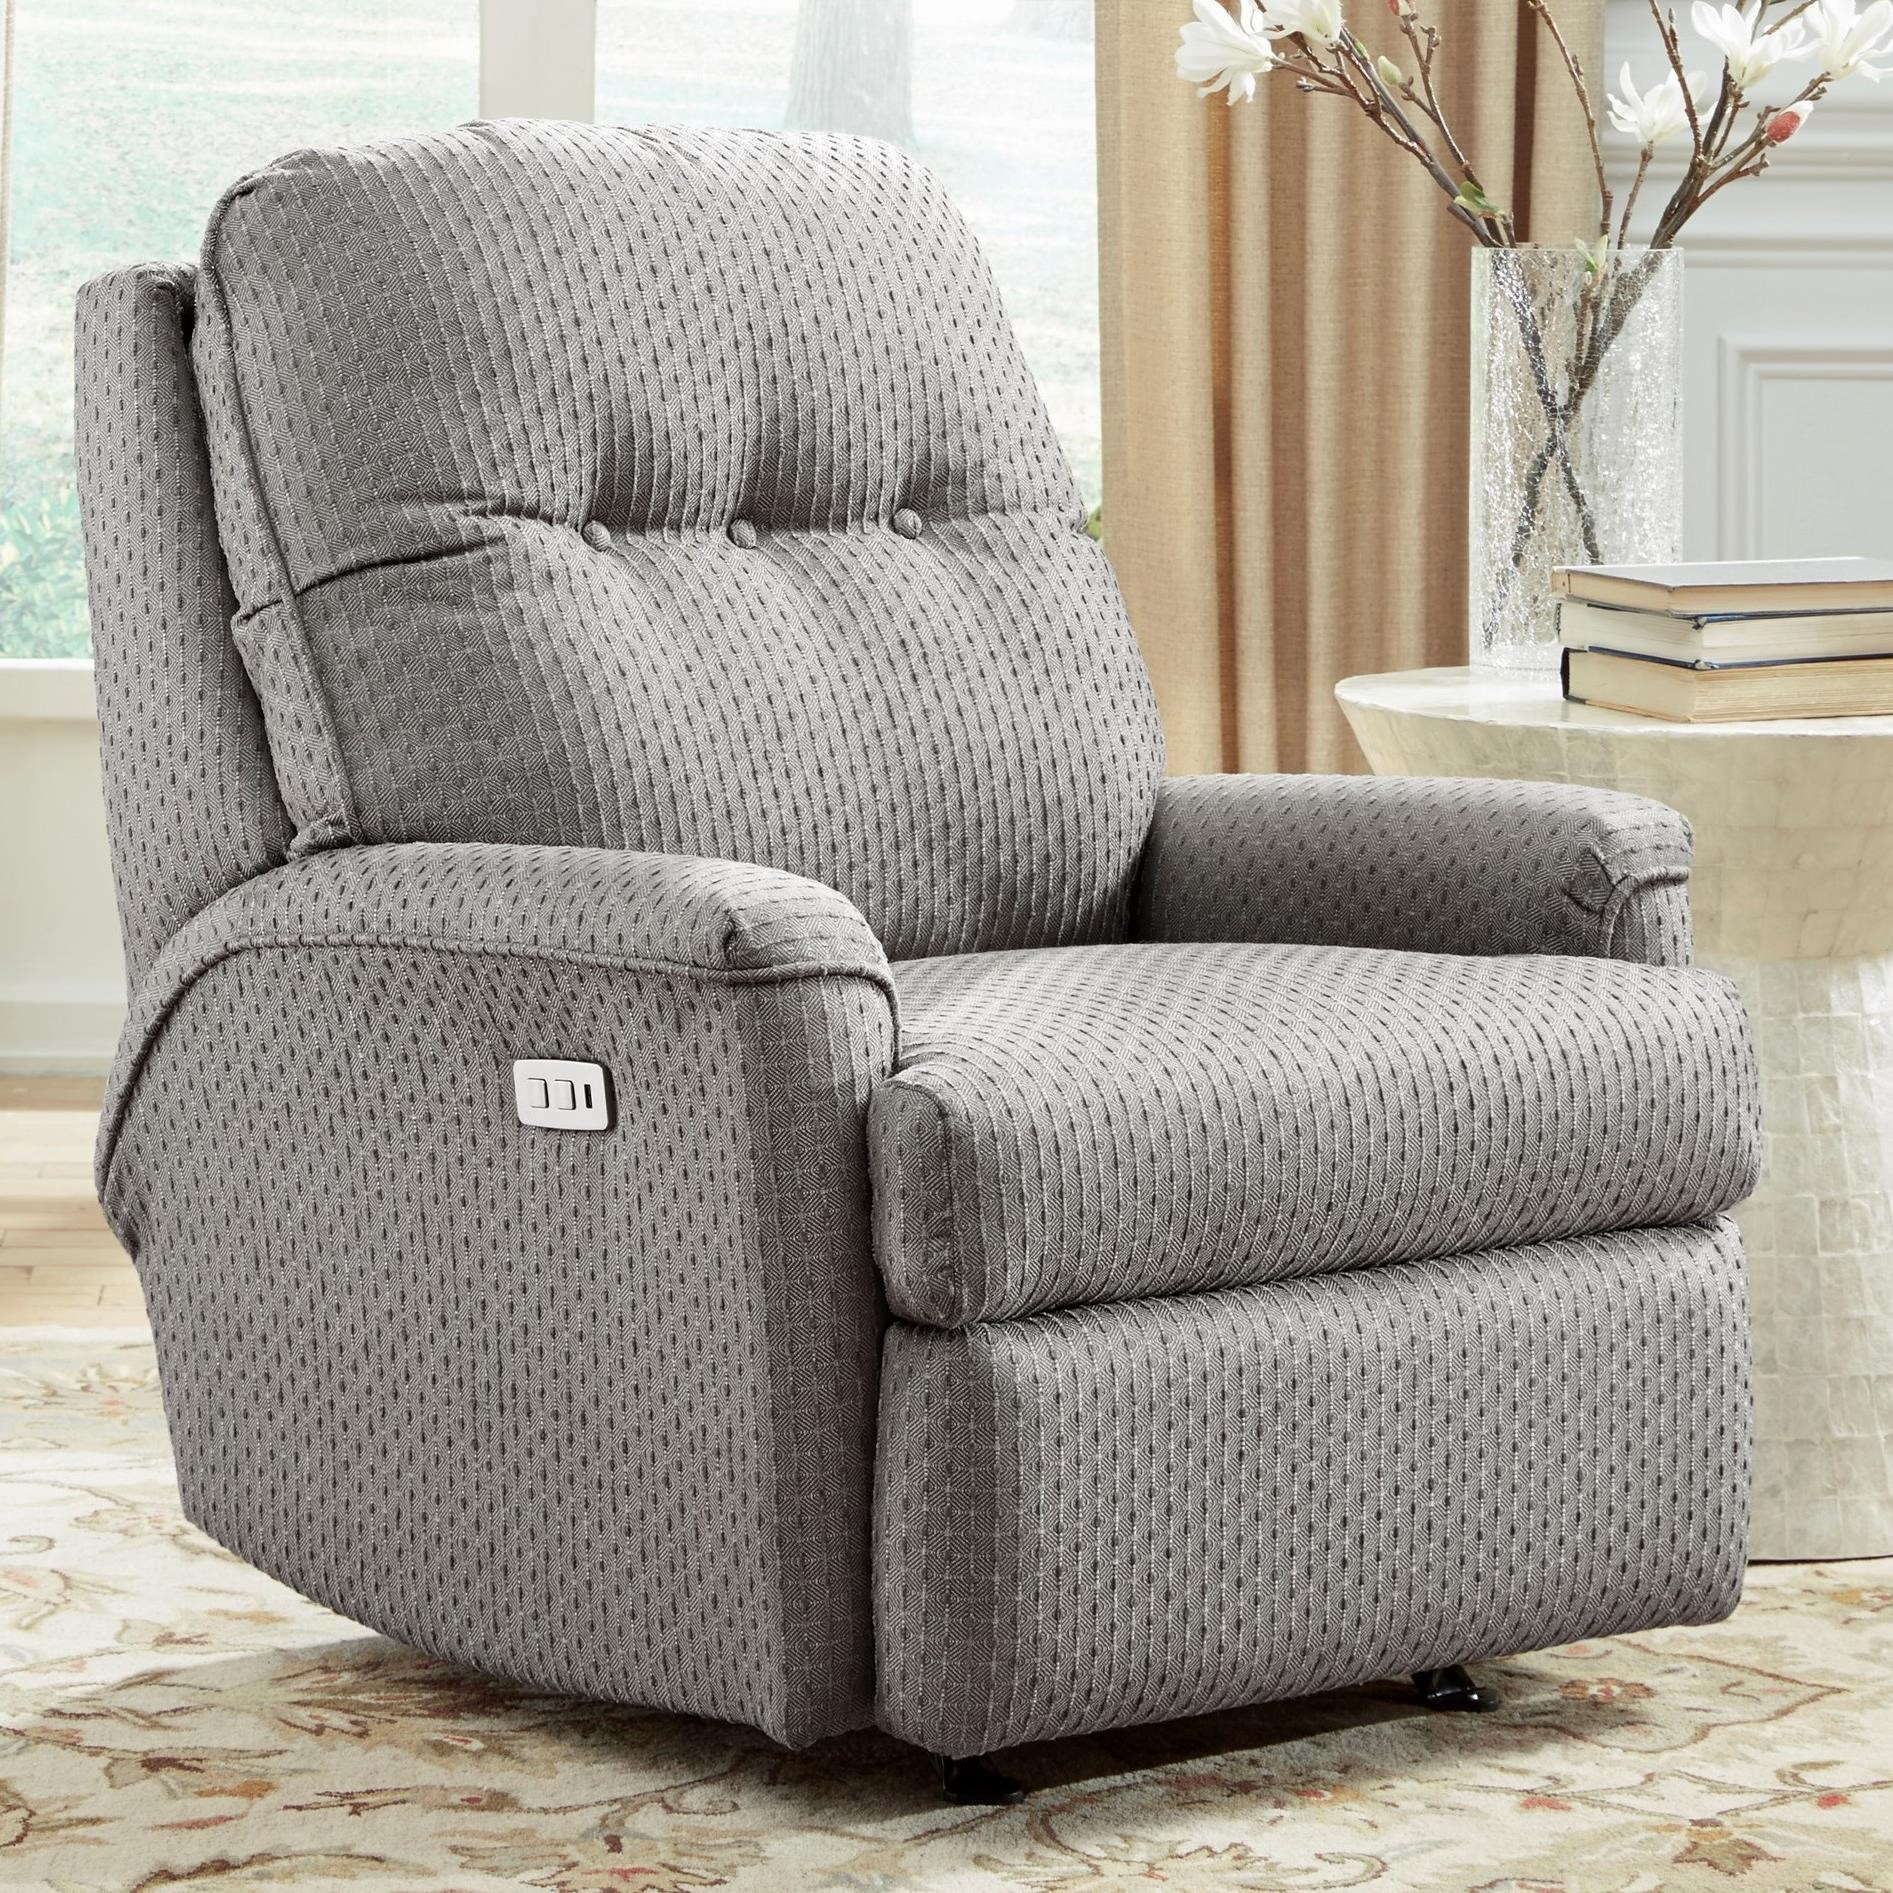 Gigi Layflat Lift Recliner w/ Pwr Hdrst & SoCozi by Southern Motion at Value City Furniture